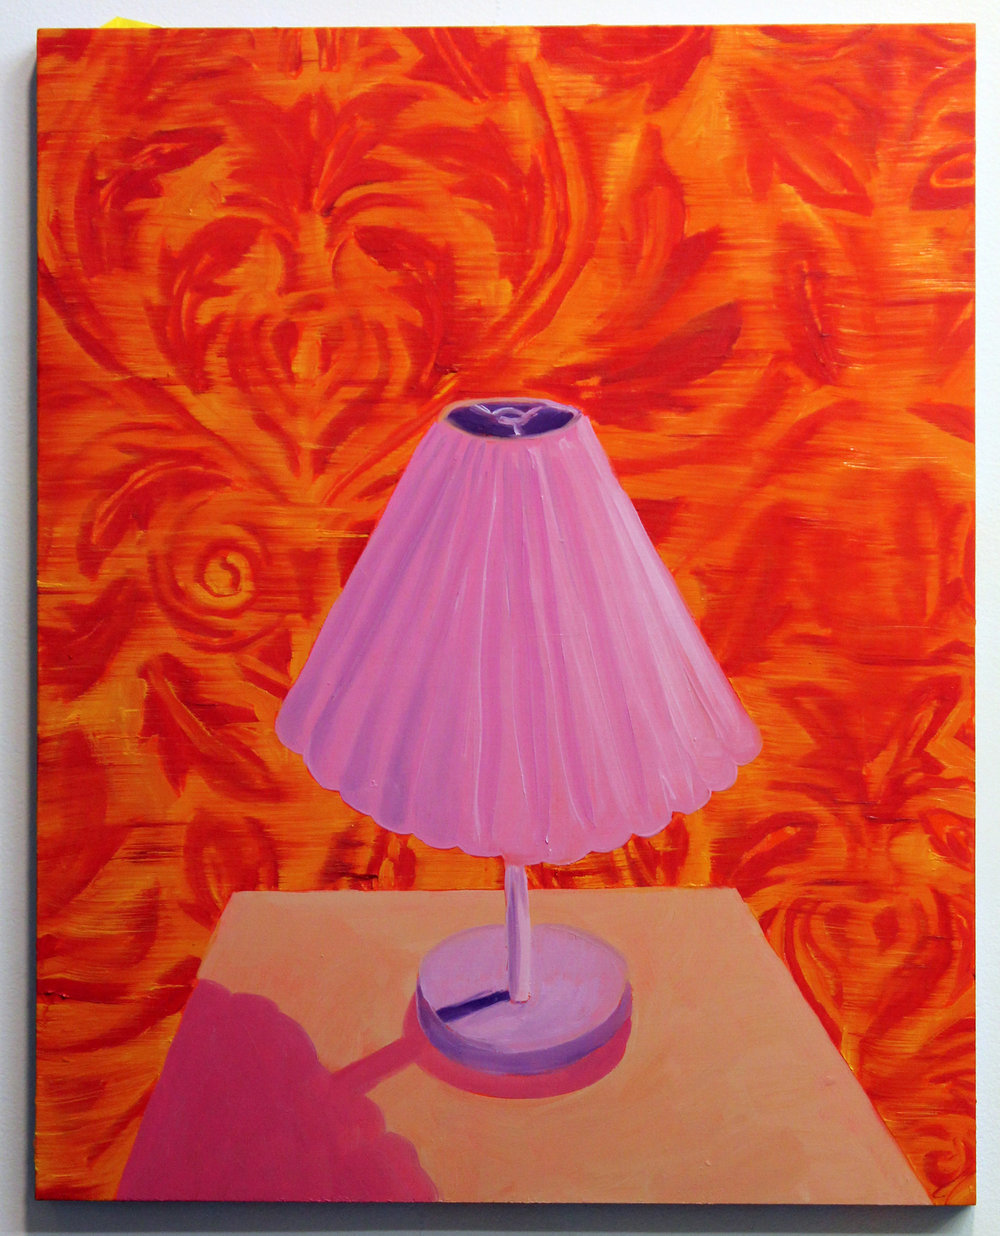 Guy_Ben-Ari__Lamp_Oil_on_panel_20x16_IN_2013.jpg